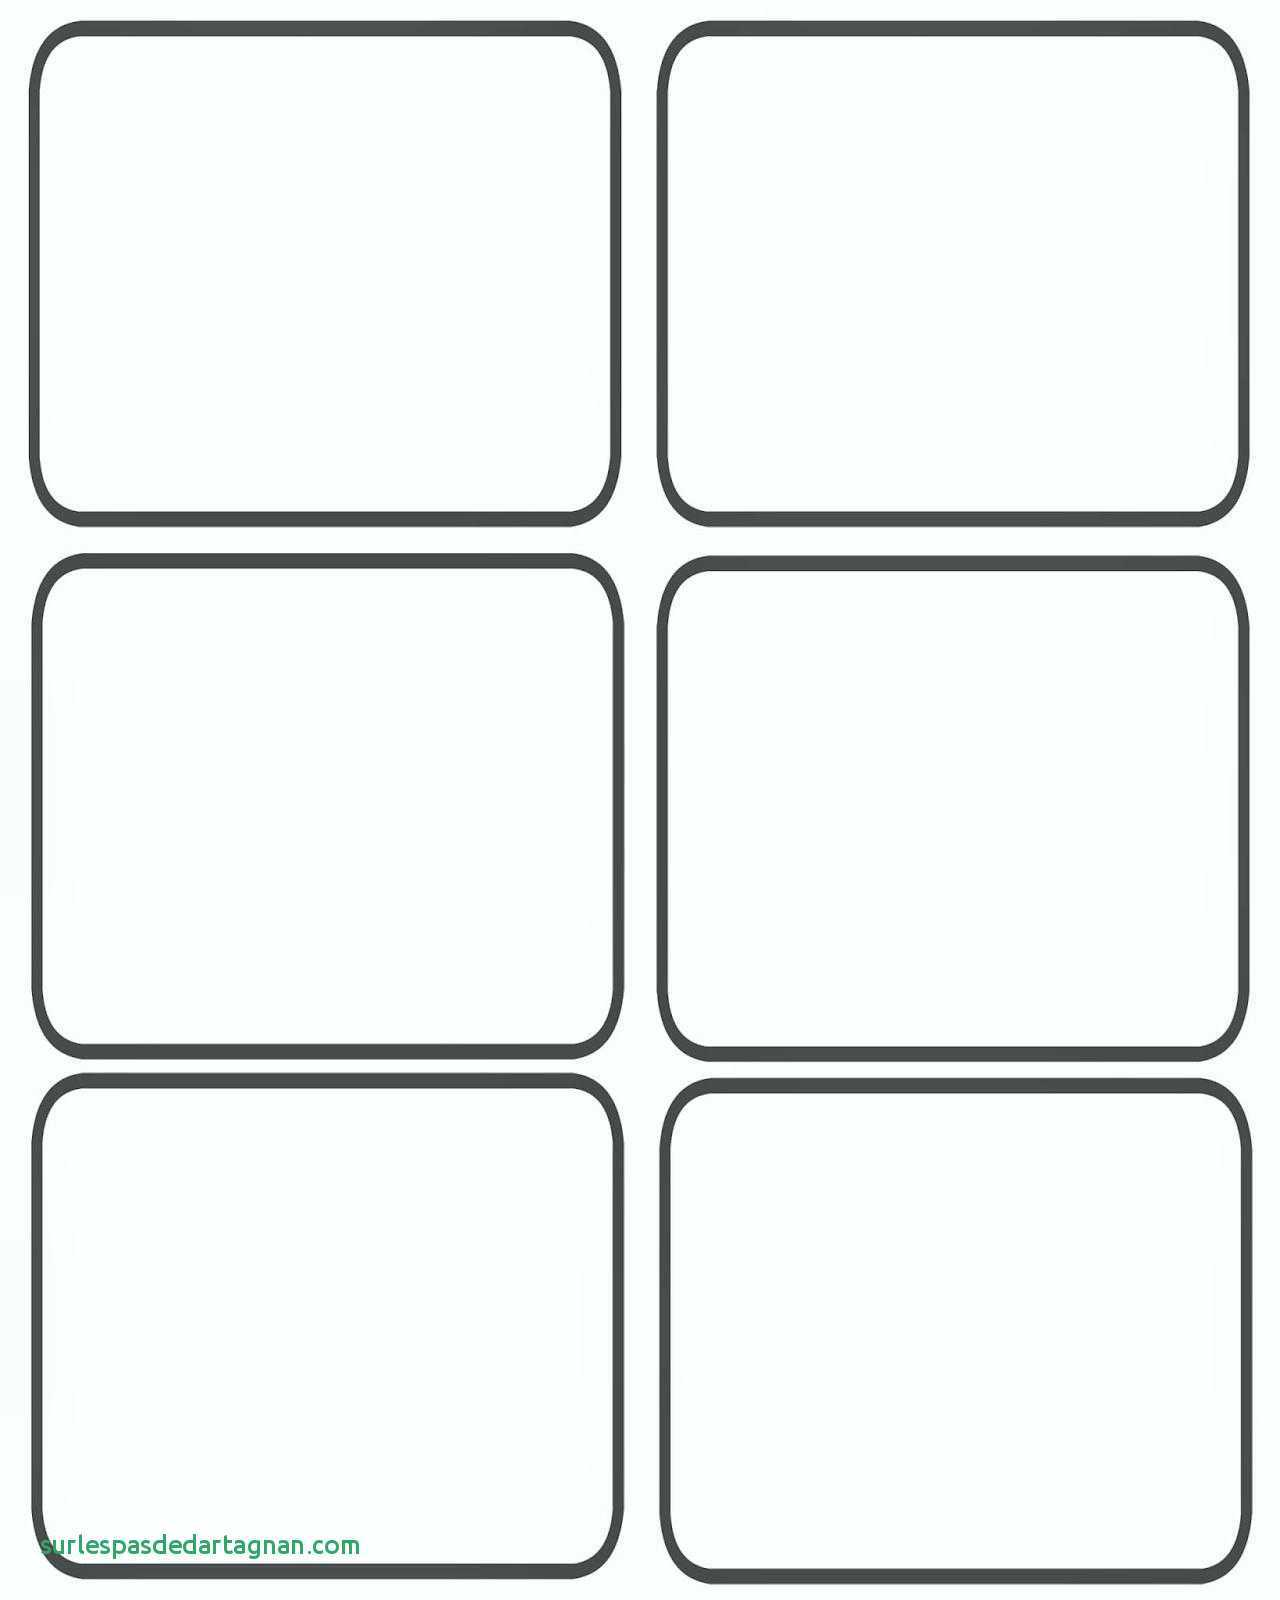 17 Free Printable Playing Cards | Kittybabylove Intended For Template For Playing Cards Printable